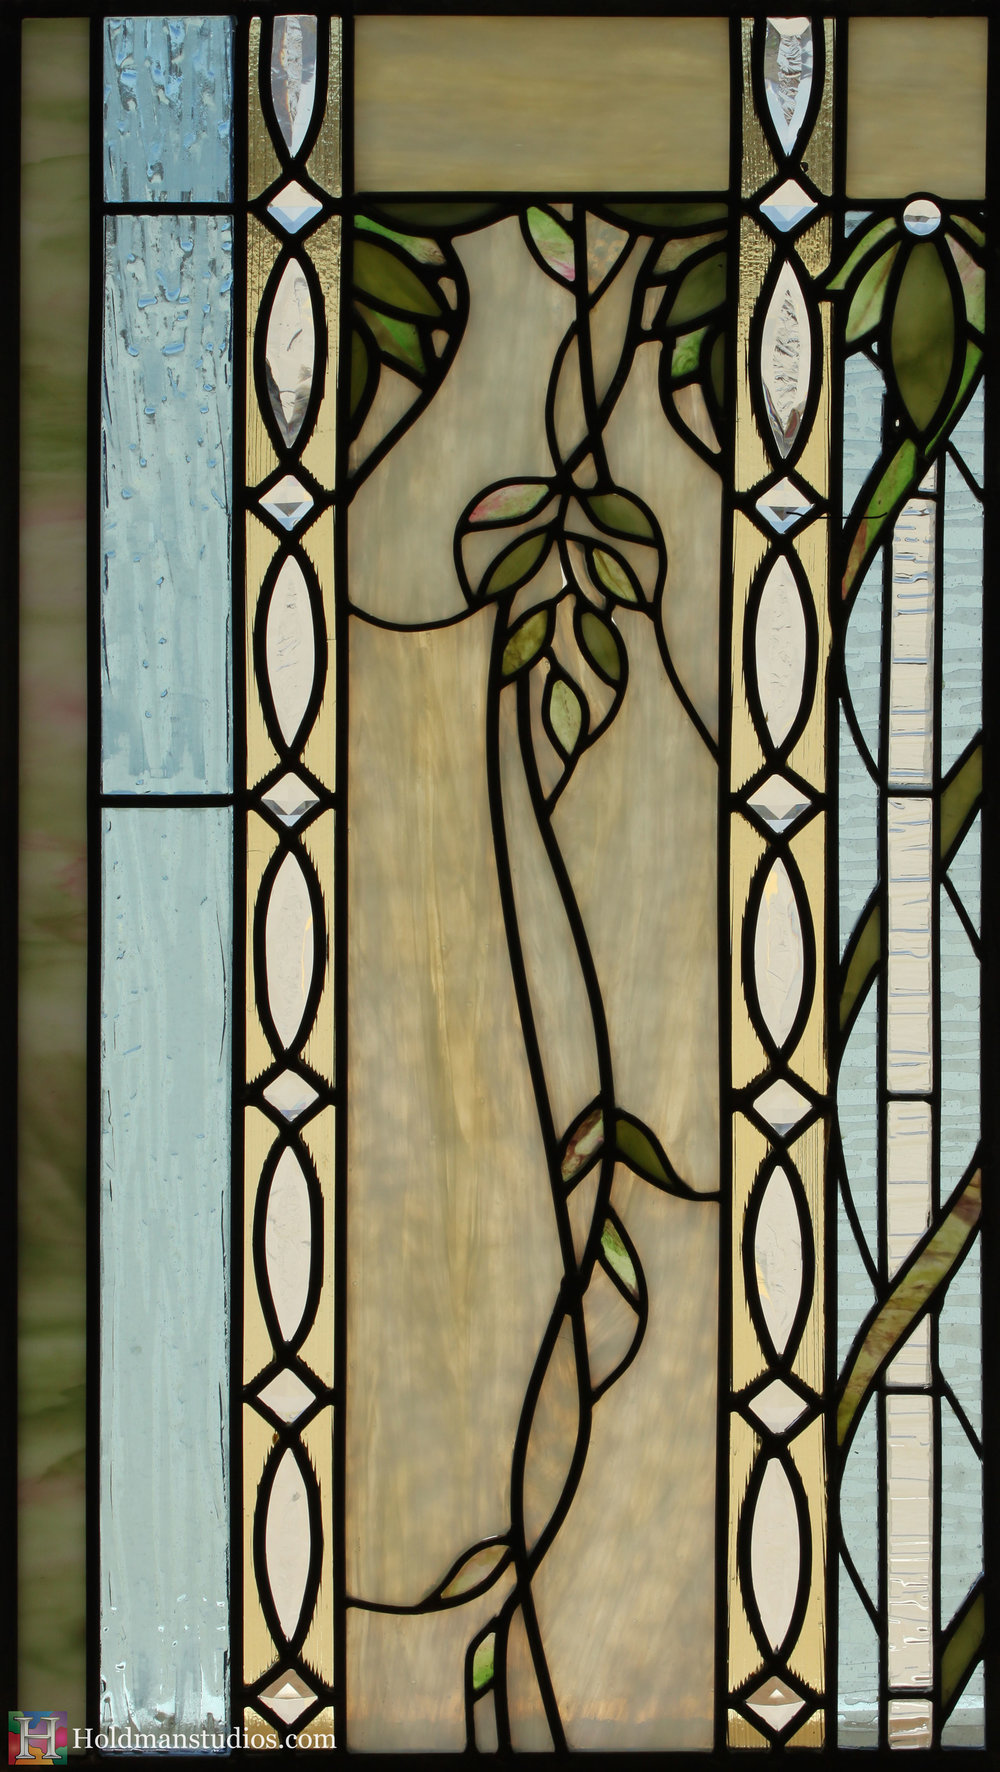 Holdman_Studios_Stained_Art_Glass_Payson_Utah_Temple_Apple_Leaves_DNA_Spiral_Sample_Window_Closeup.jpg